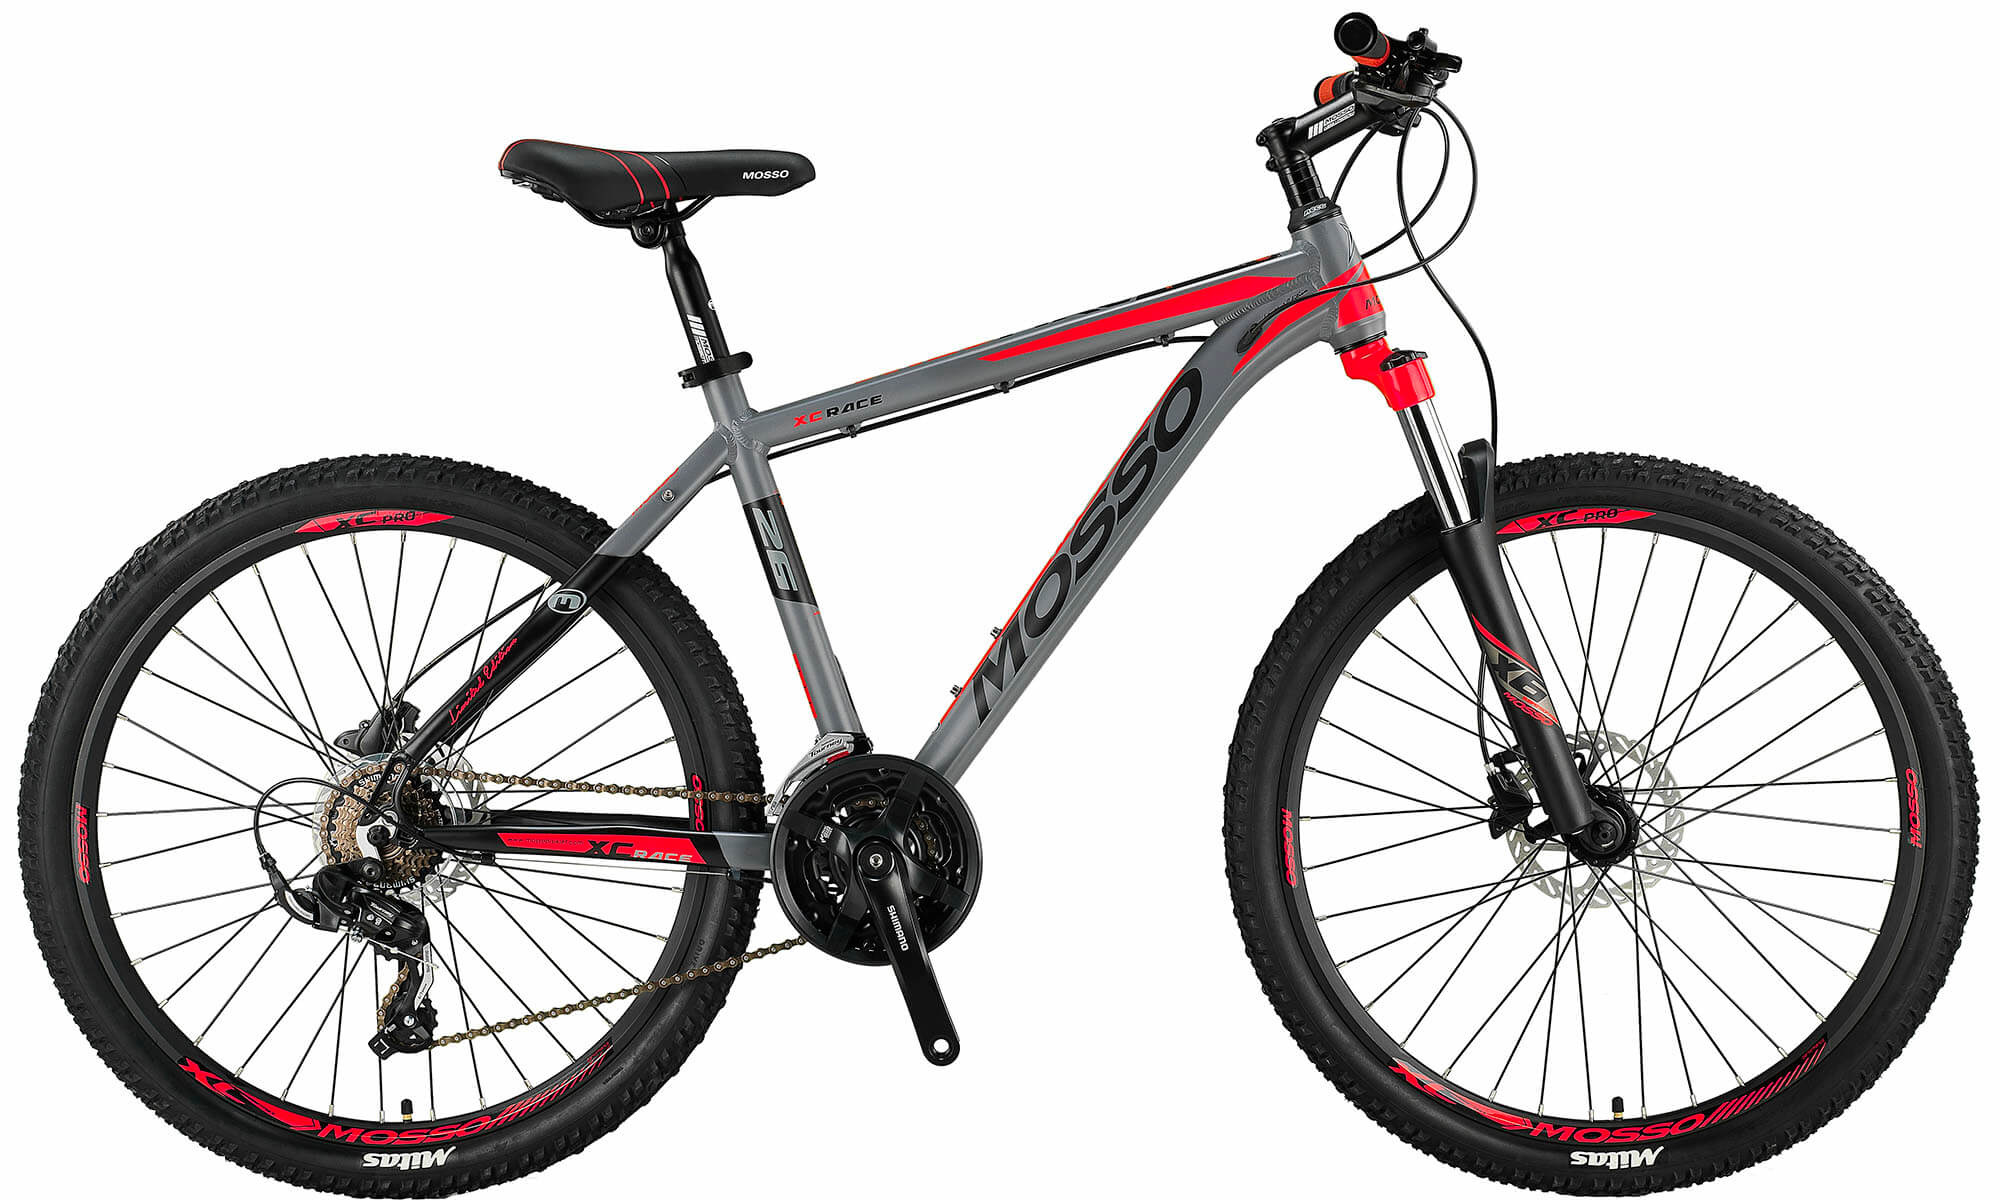 Altec Mosso Wildfire Mountainbike 26 inch 21v HYDR Grijs Rood